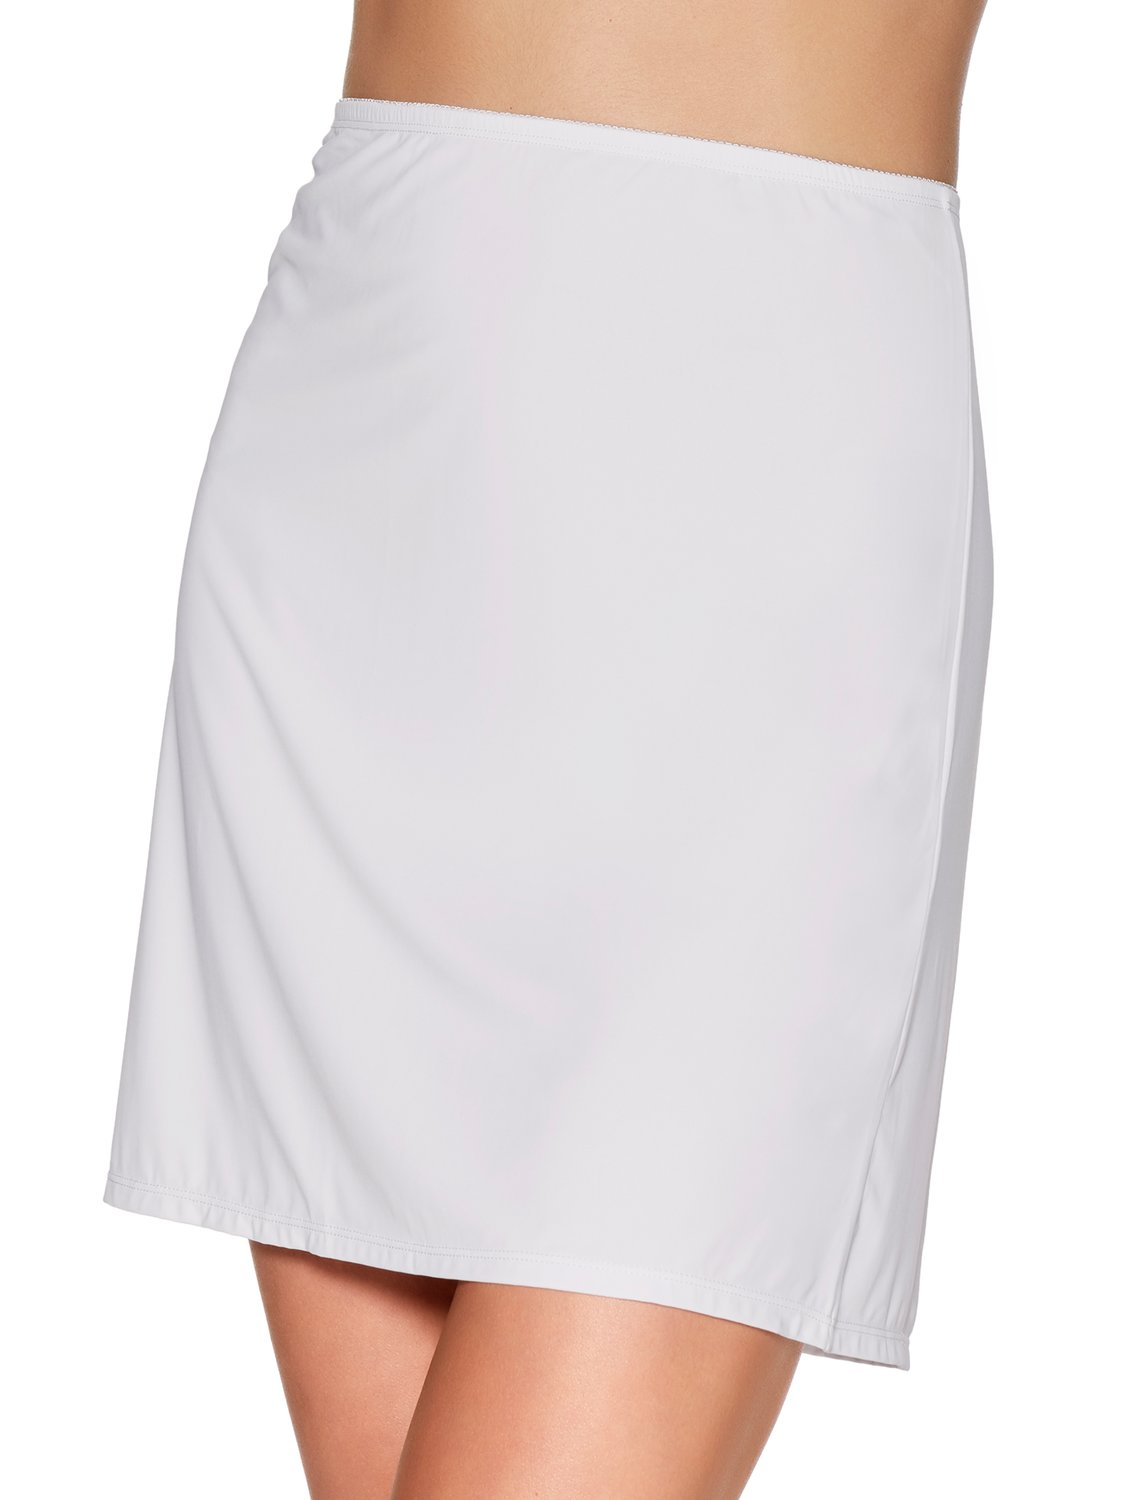 ladies shapewear plain stretch microfibre no vpl smoothing half slip skirt  - ivory